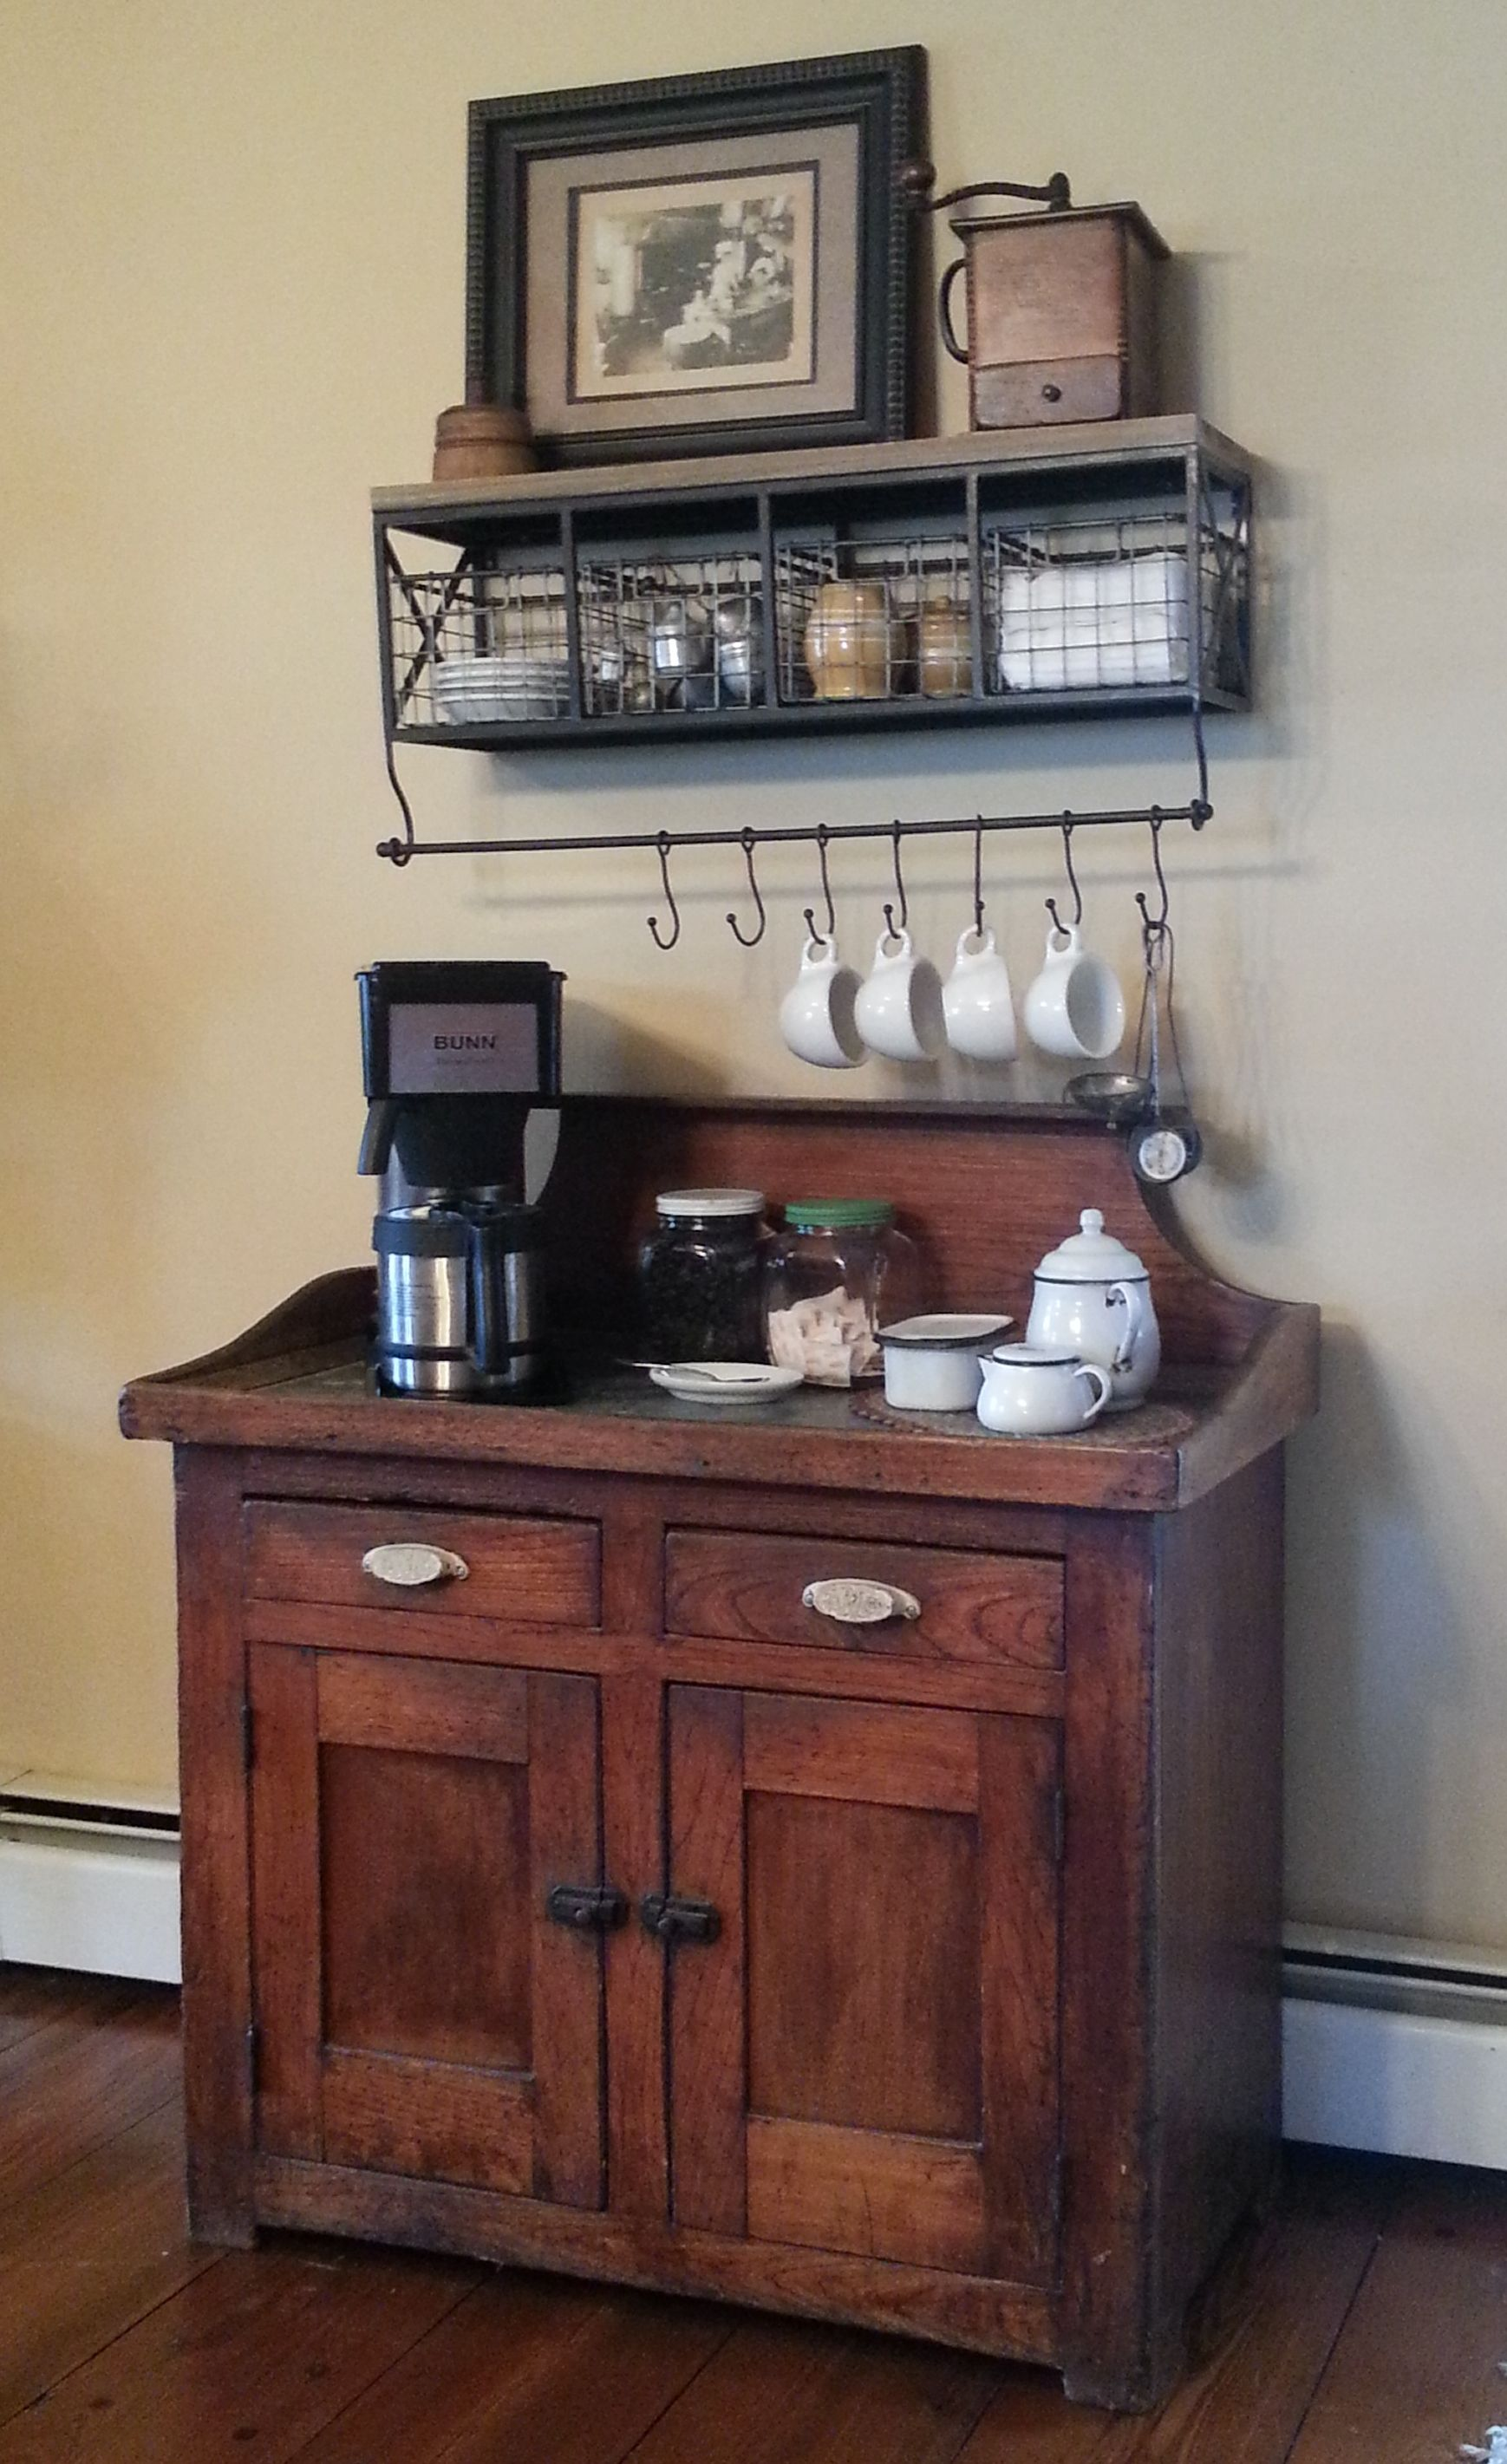 coffee bar in kitchen hotels with miami 25 43 diy ideas for your home stunning pictures